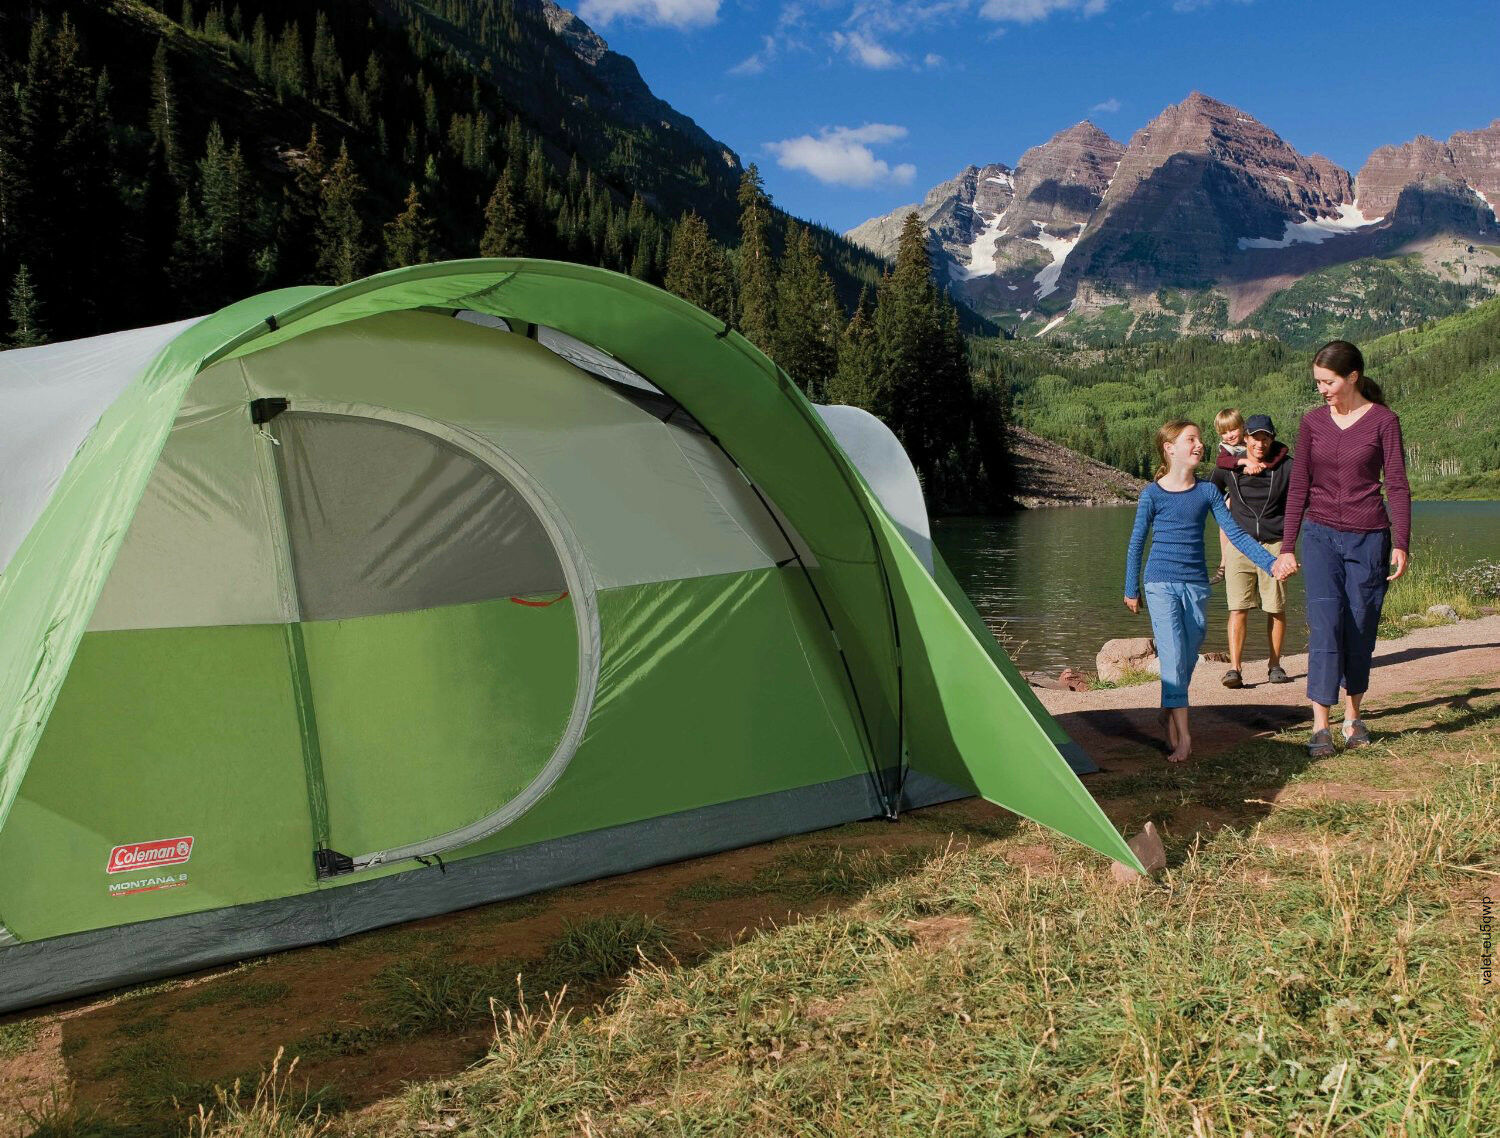 8 Person Tent Modified Dome Camping Outdoor Family Shelter Green 16x7Ft. Coleman